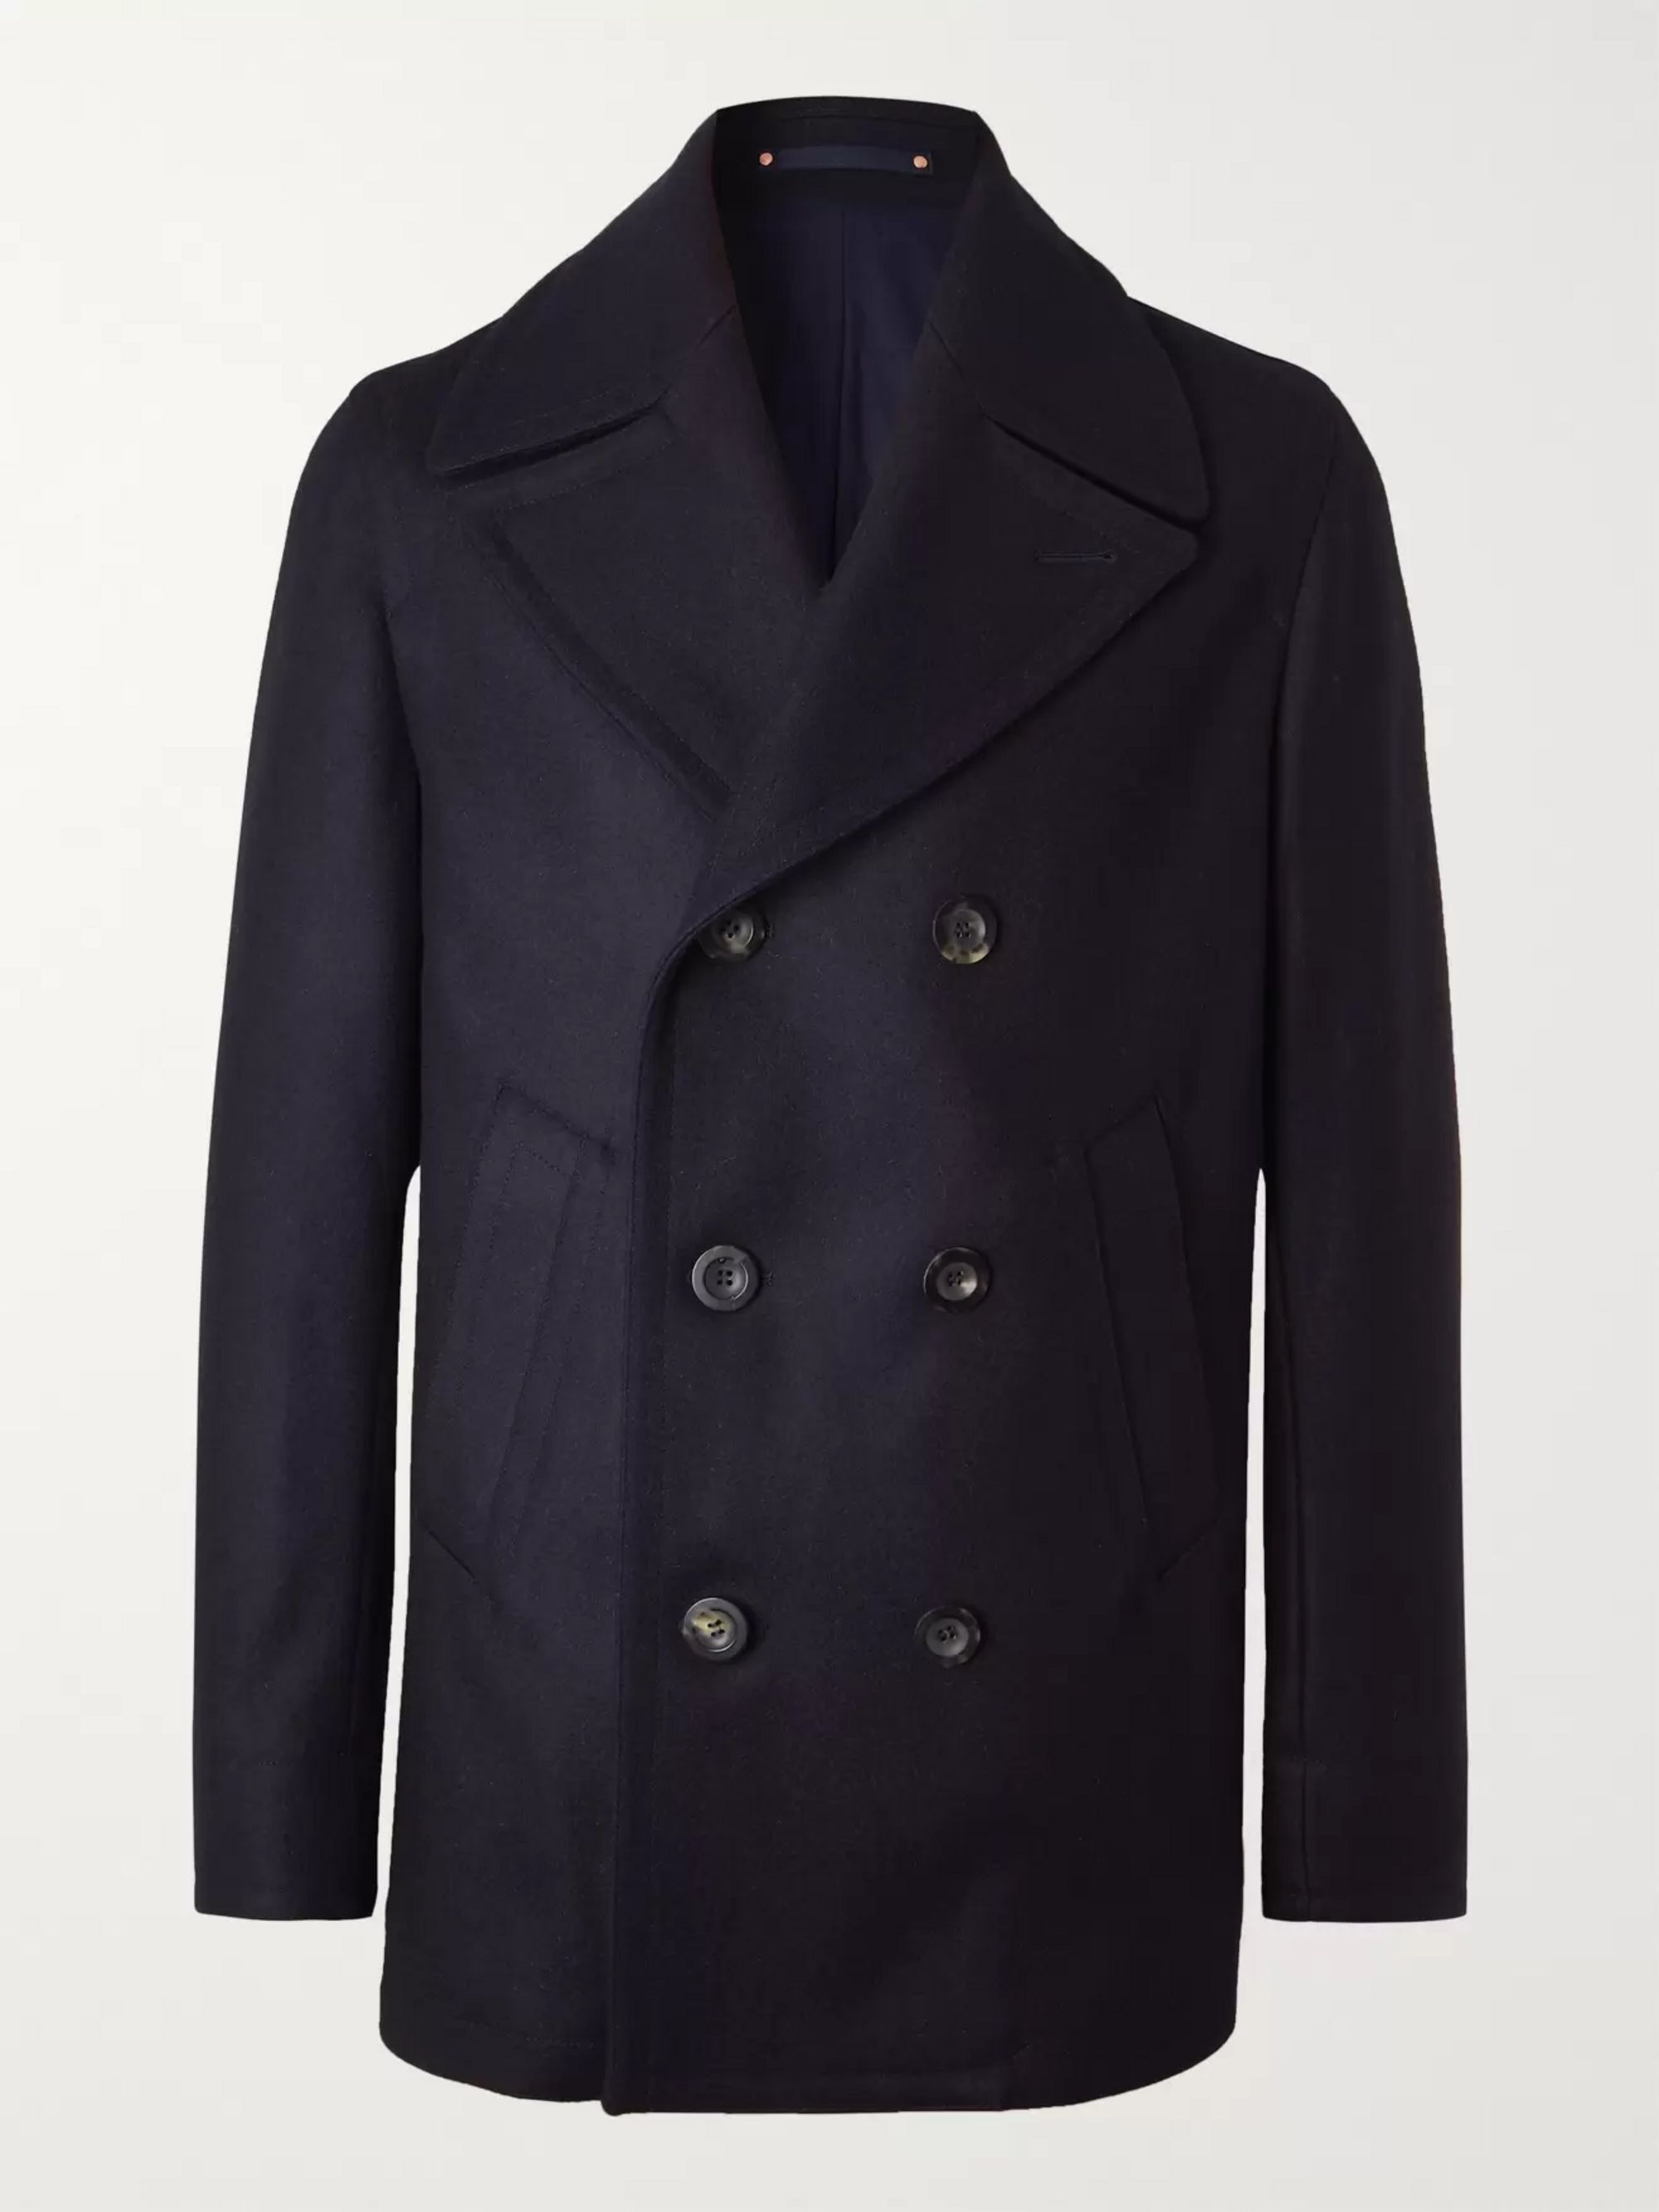 Private White V.C. + Woolmark Melton Merino Wool Peacoat